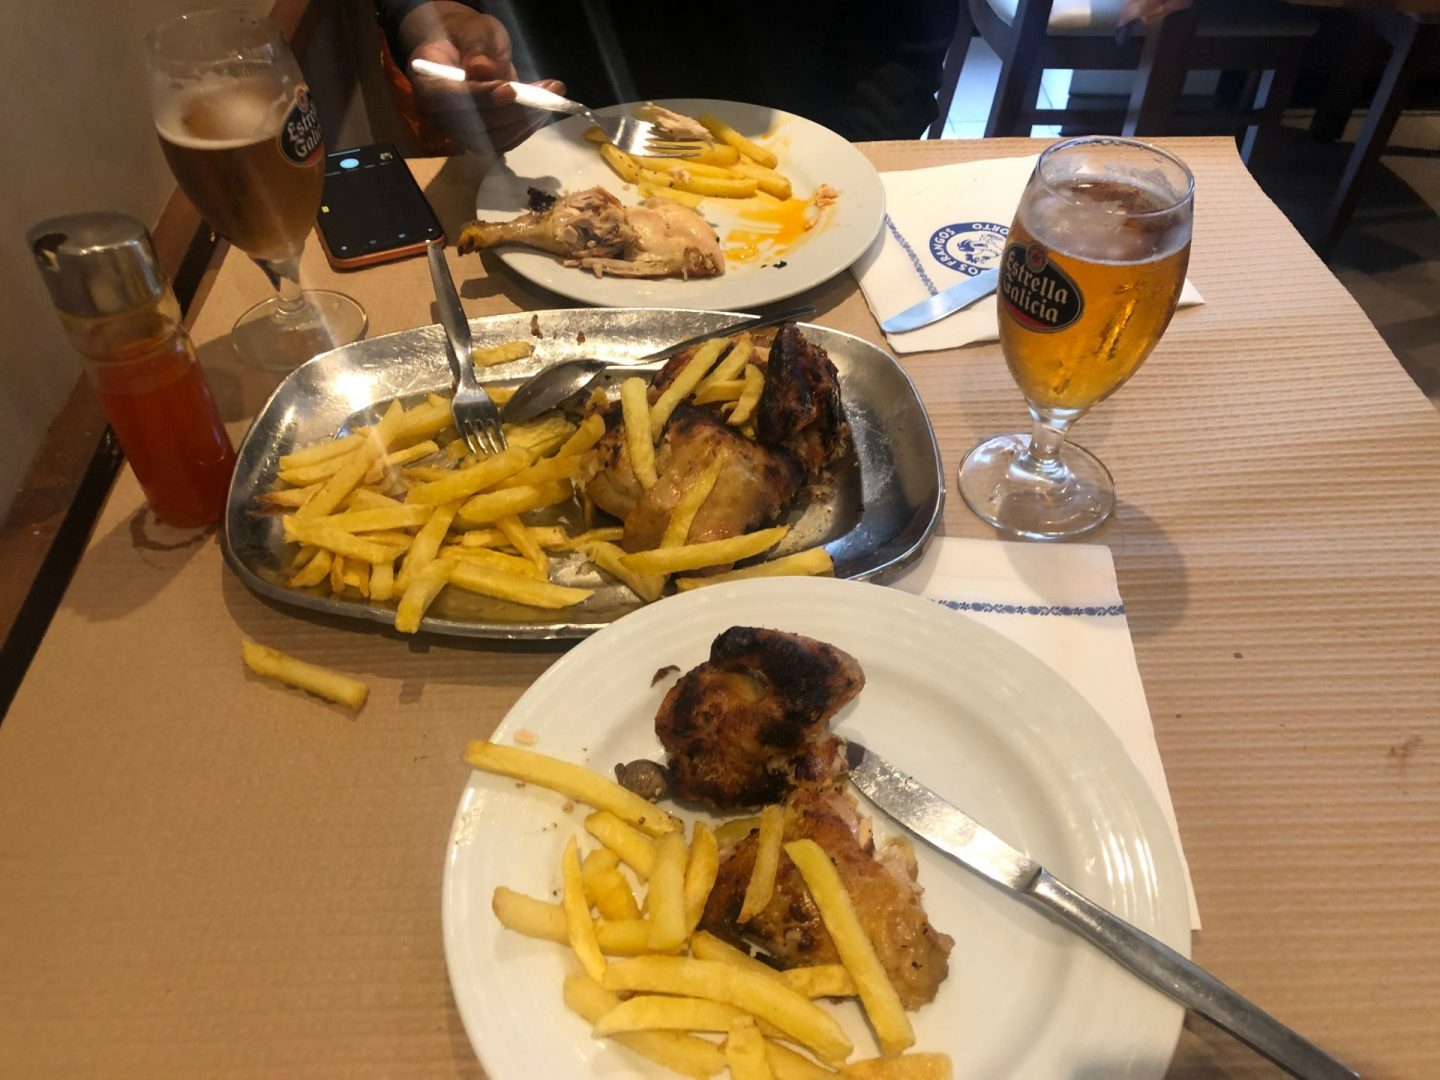 A whole Roast chicken and Fries to share and 2 beers costs €13.50